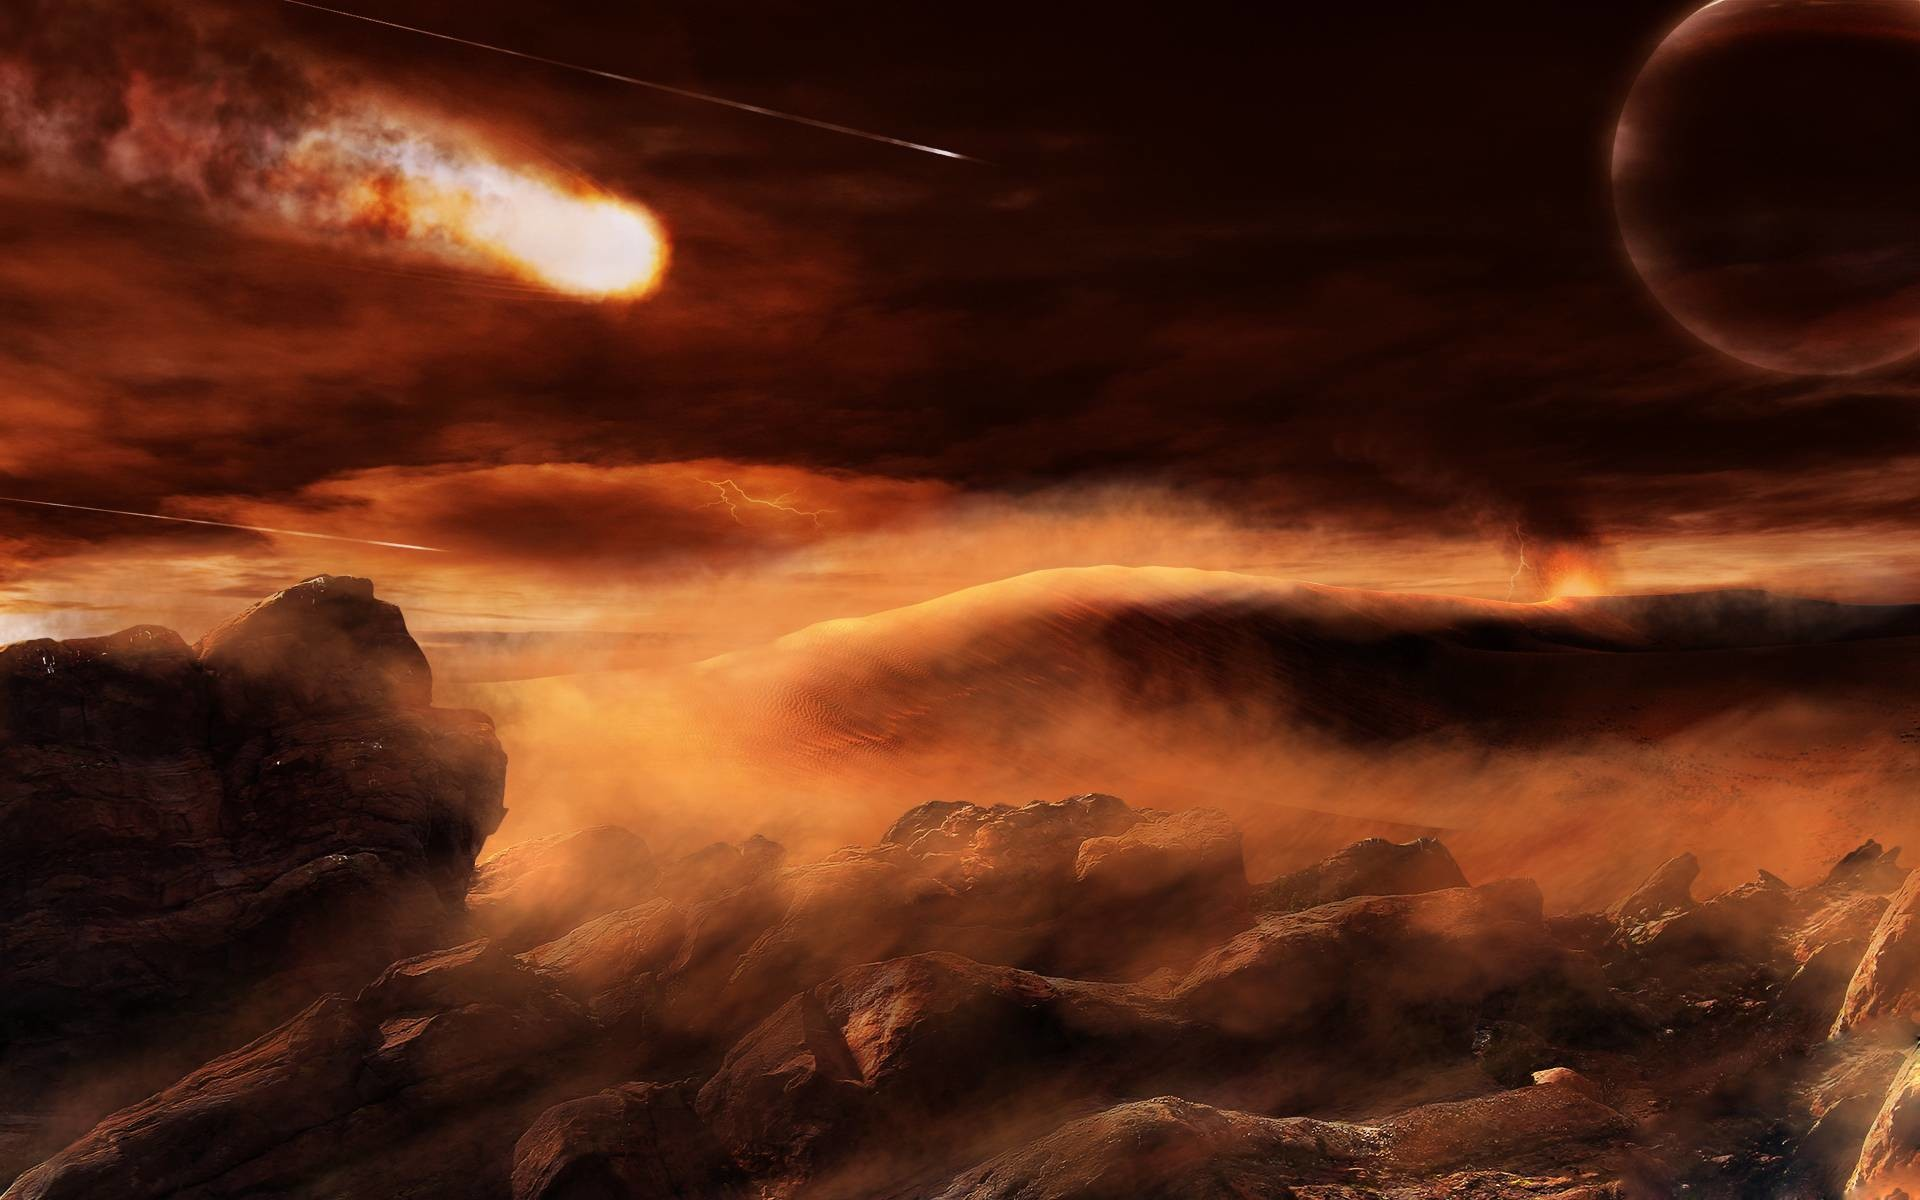 On an alien planet wallpapers and images – wallpapers, pictures .